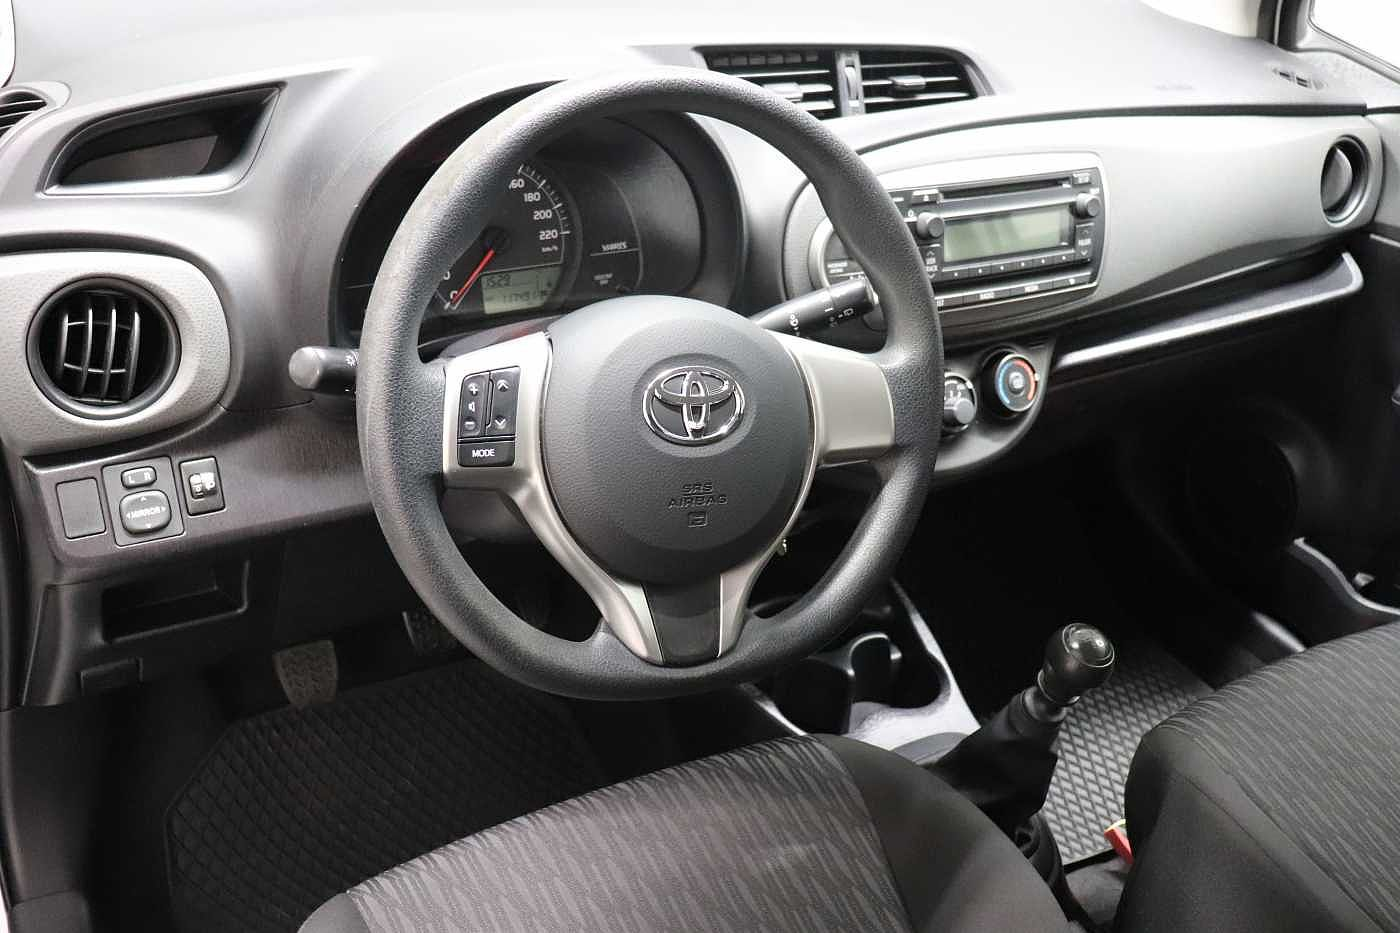 Toyota Yaris 1.4 D-4D 6MT - photo 12